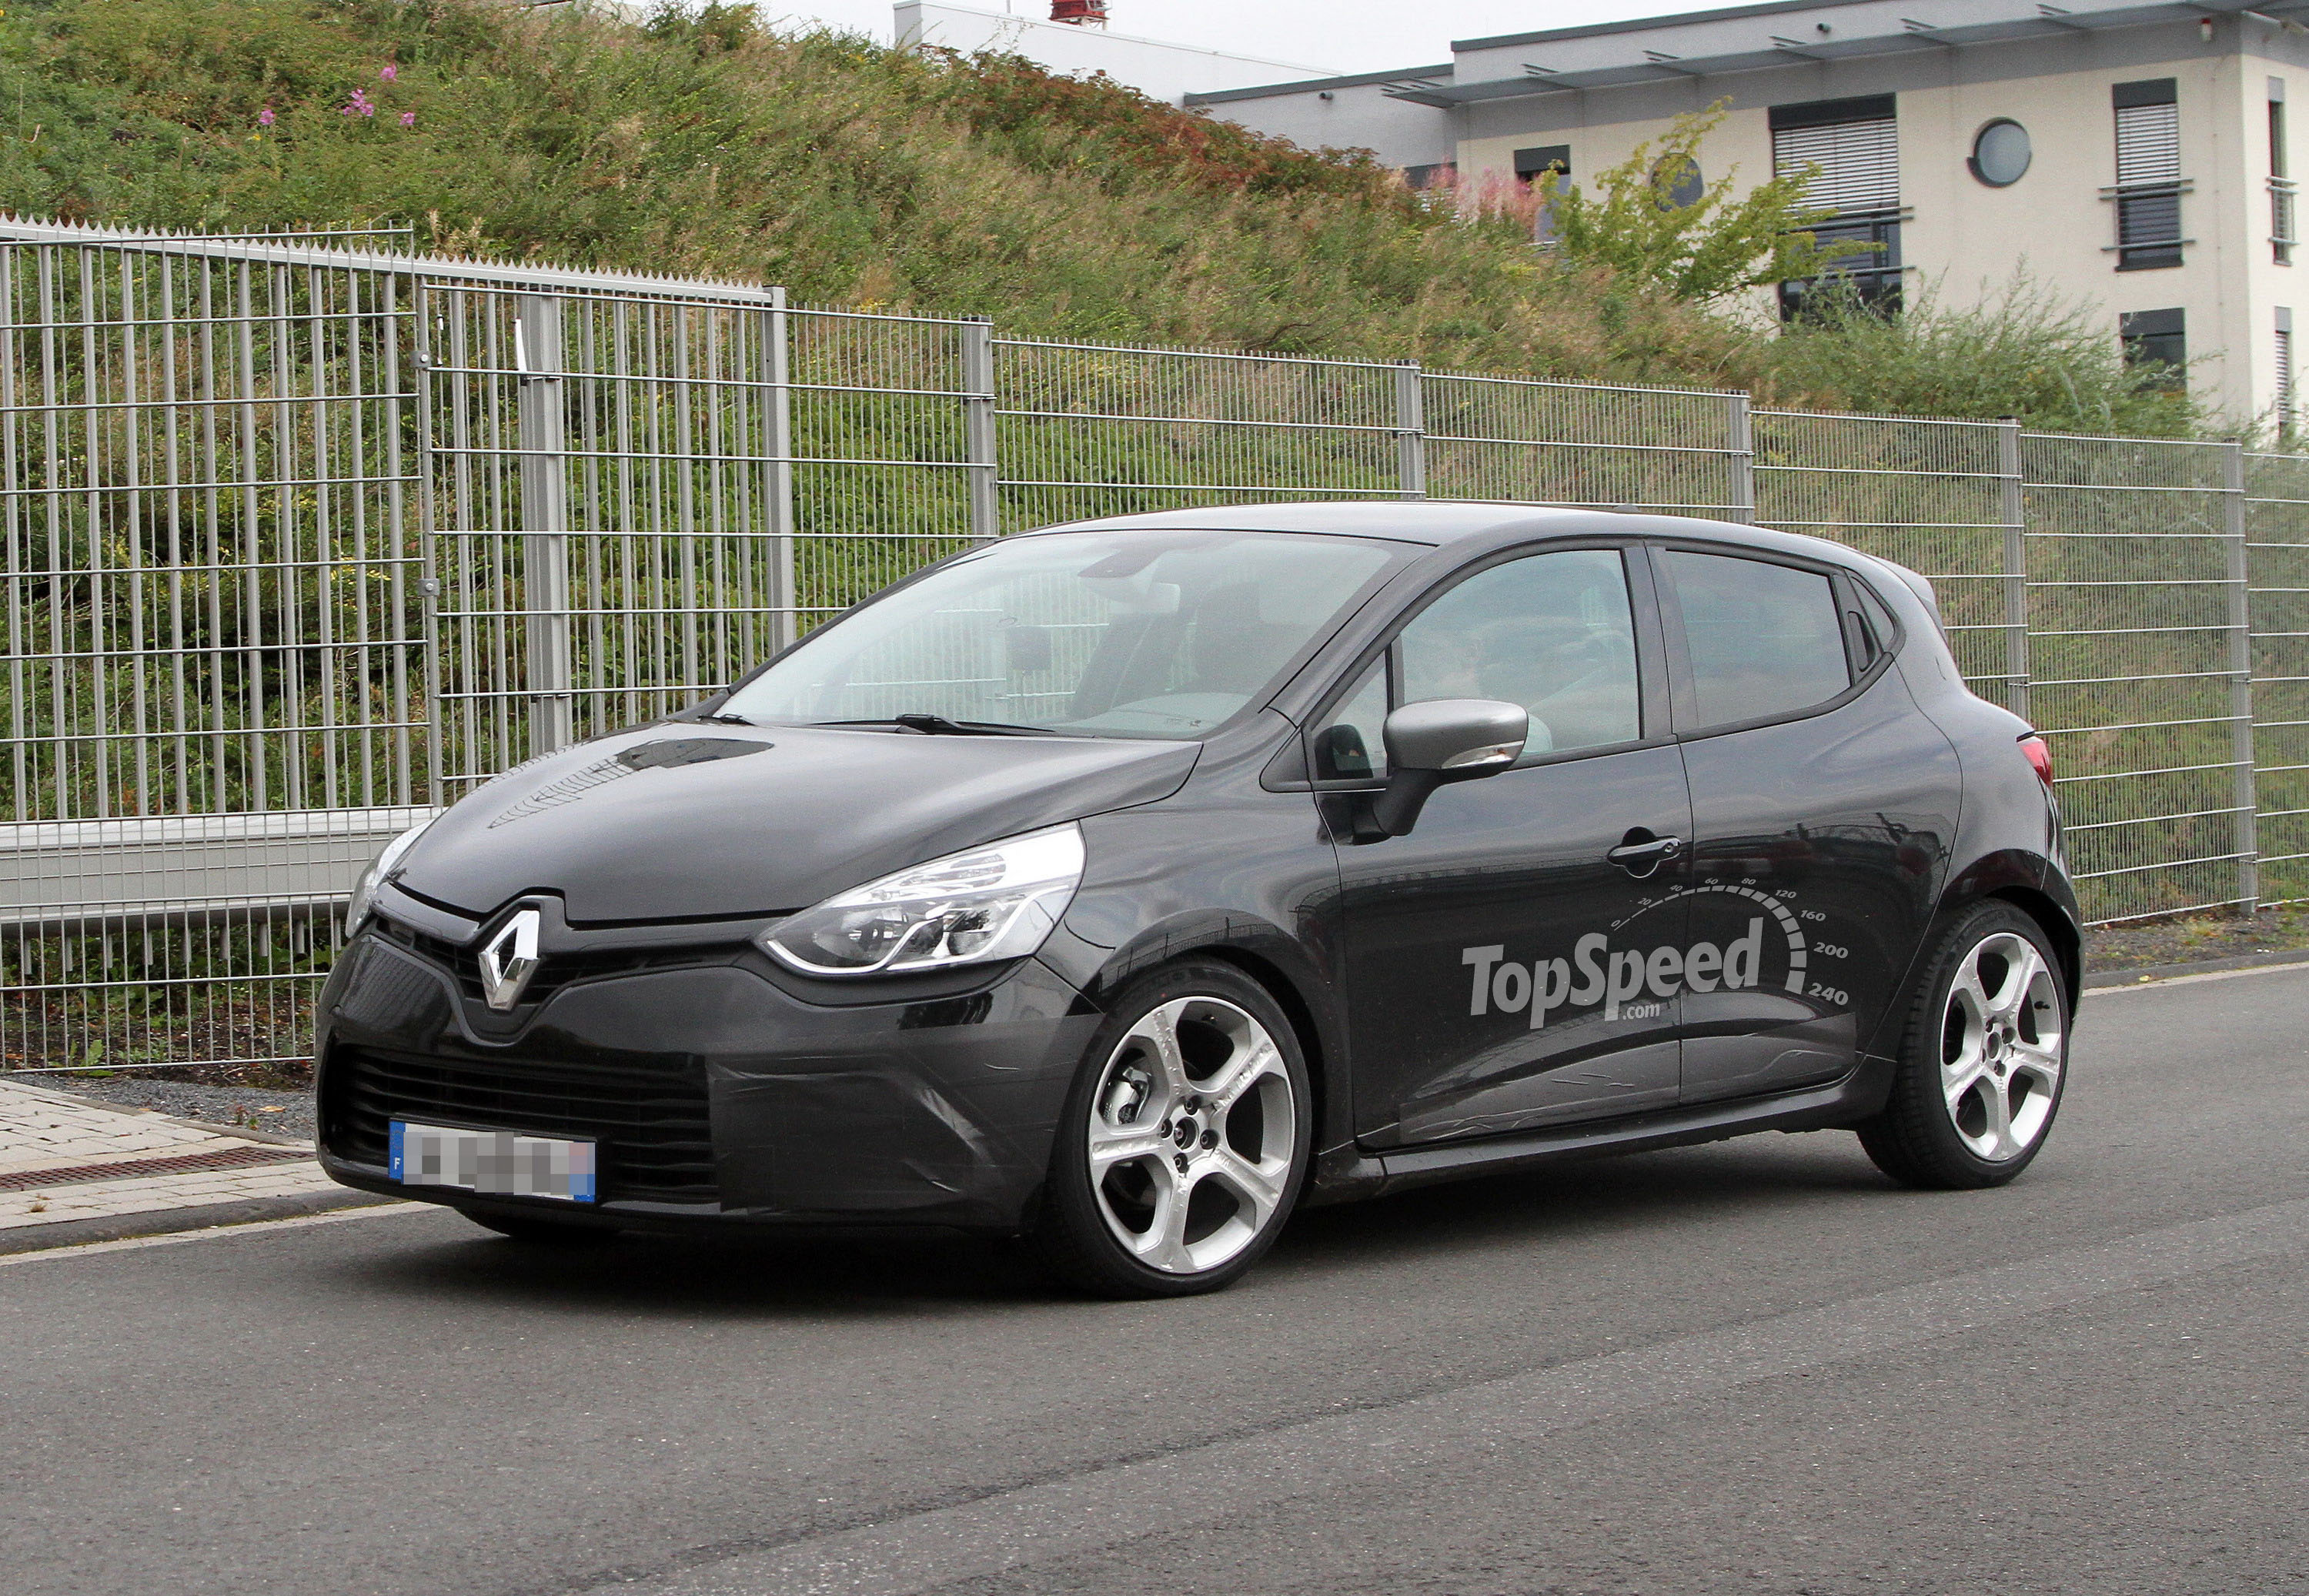 2013 renault clio gordini review gallery top speed. Black Bedroom Furniture Sets. Home Design Ideas